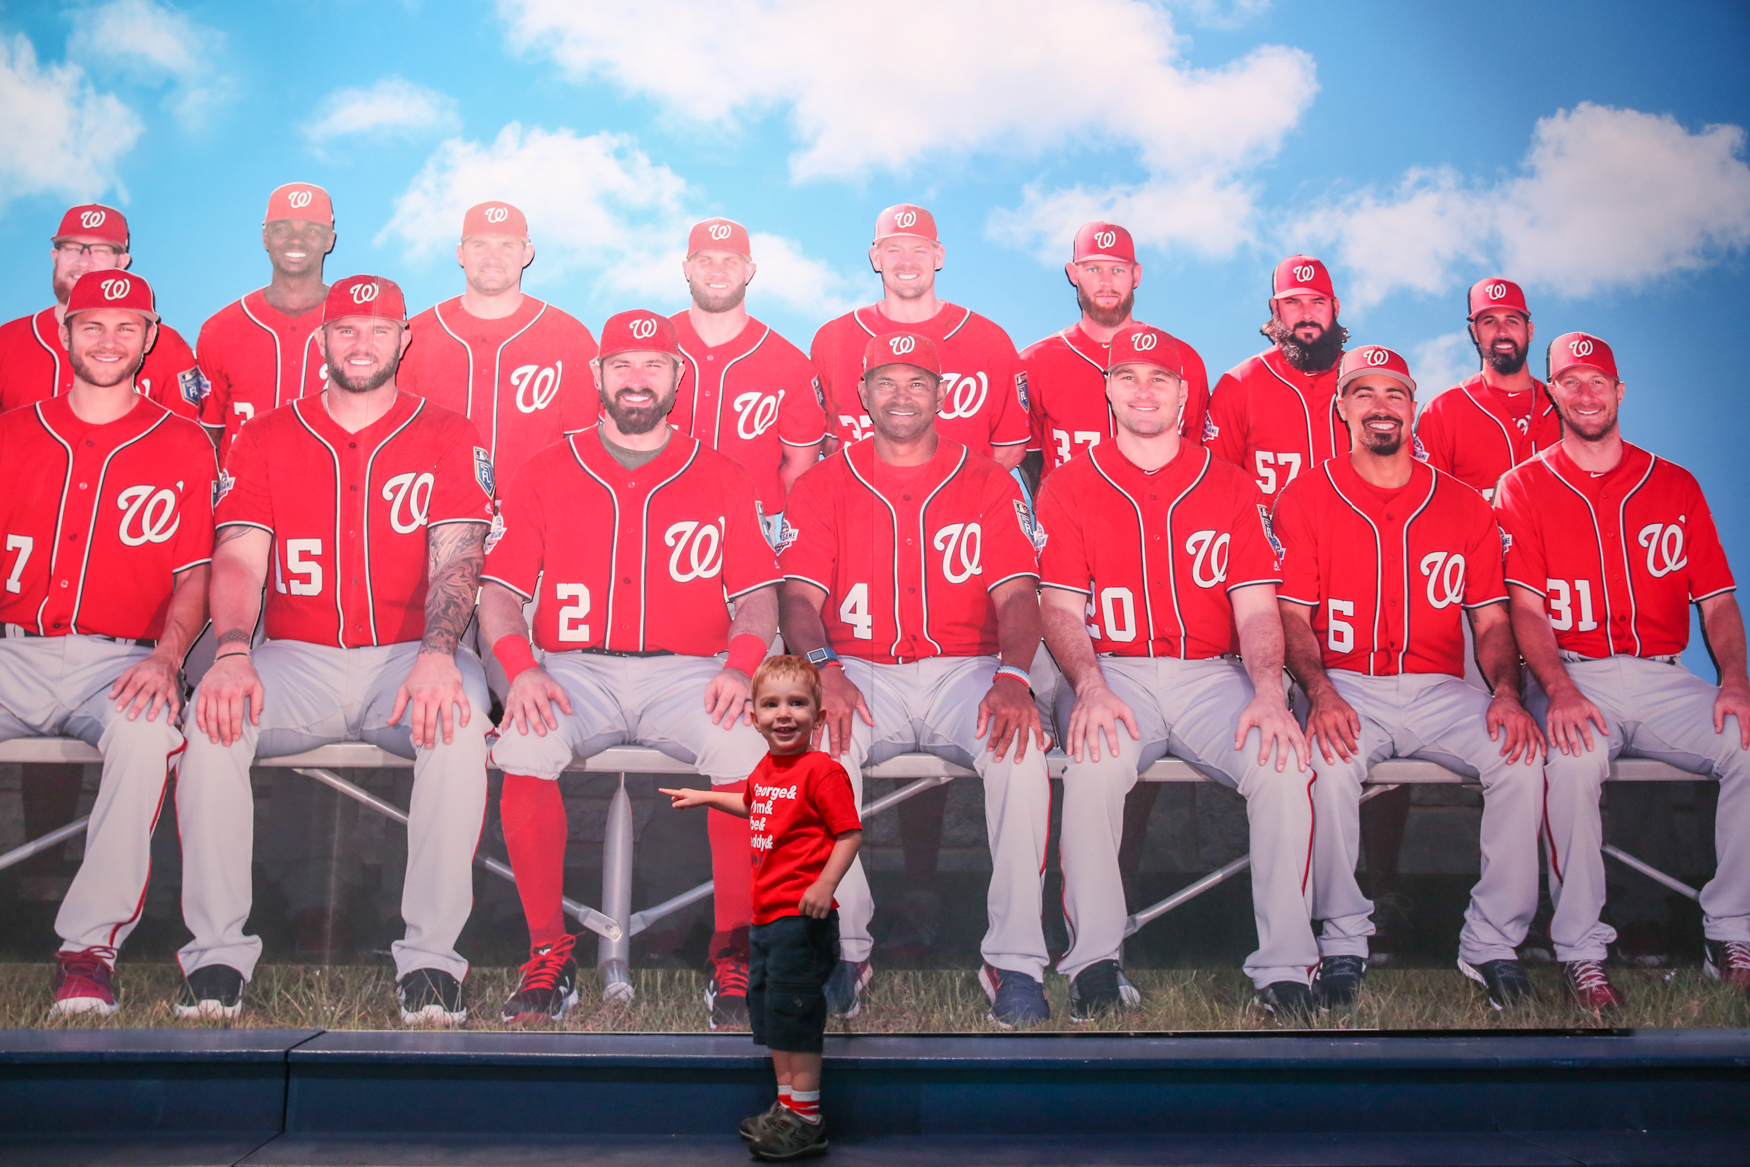 Peter Londin,{ } 2, was thrilled to meet life-size cut-outs of his favorite Nats players.{ } (Amanda Andrade-Rhoades/DC Refined)